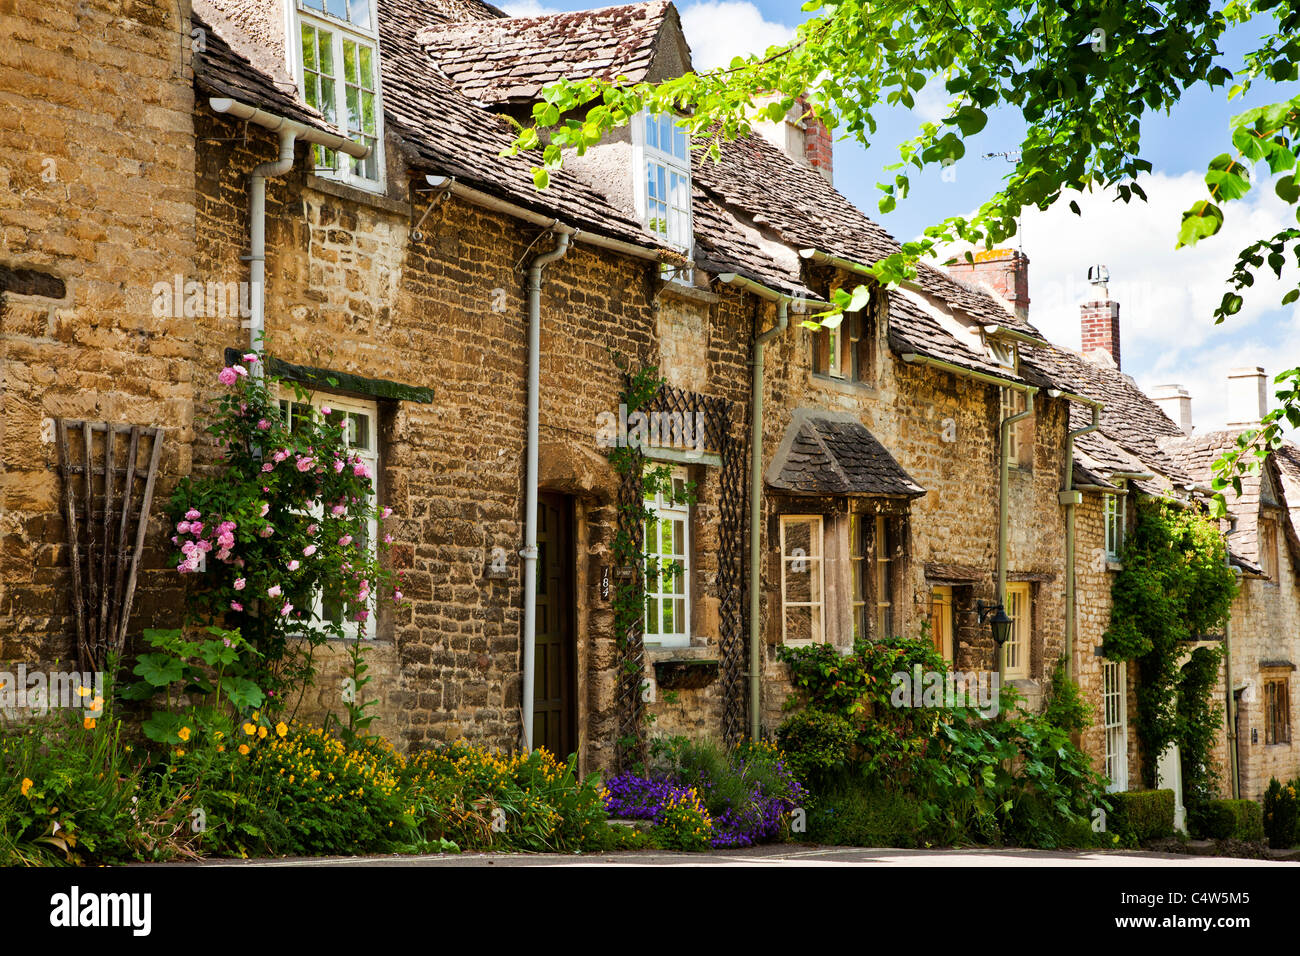 Row of pretty Cotswold stone cottages in the tourist town of Burford, Oxfordshire, England, UK - Stock Image